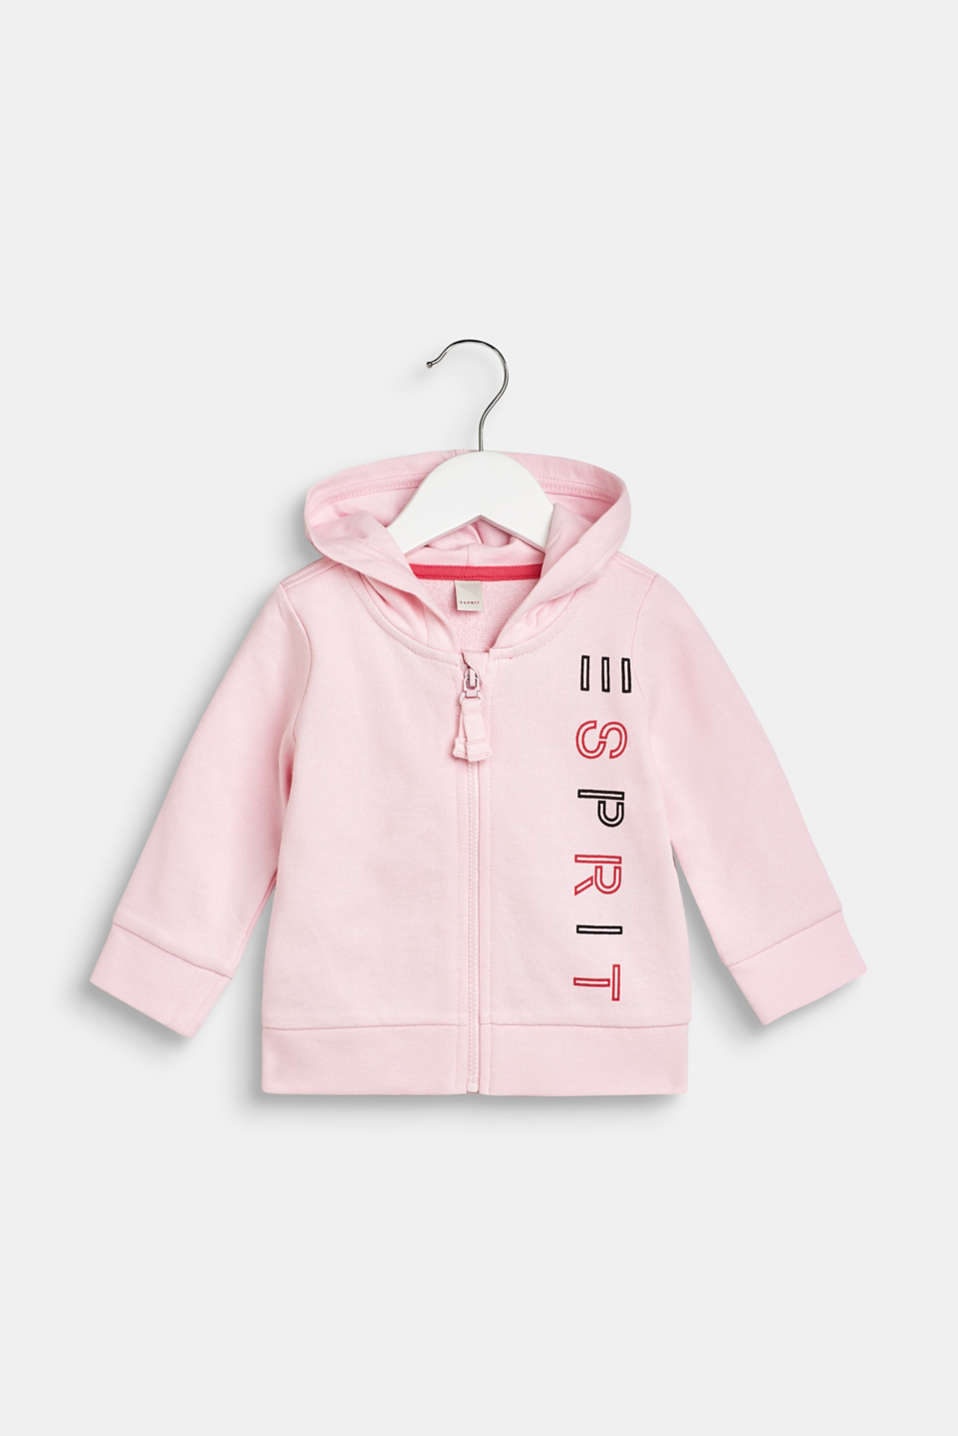 Esprit - Logo cardigan with a hood, 100% cotton